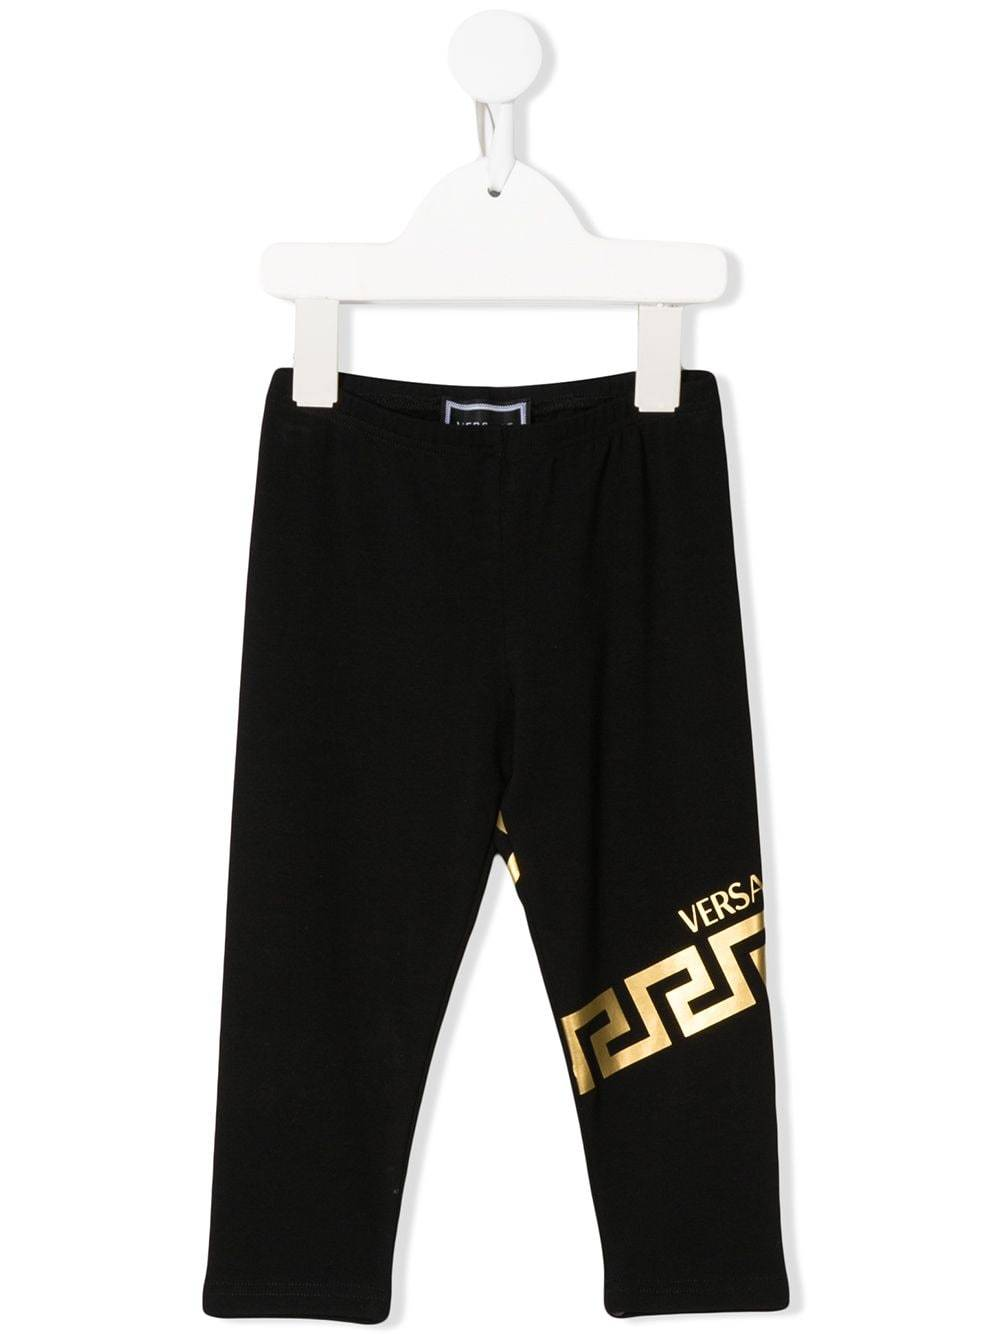 VERSACE KIDS logo print leggings black - Maison De Fashion